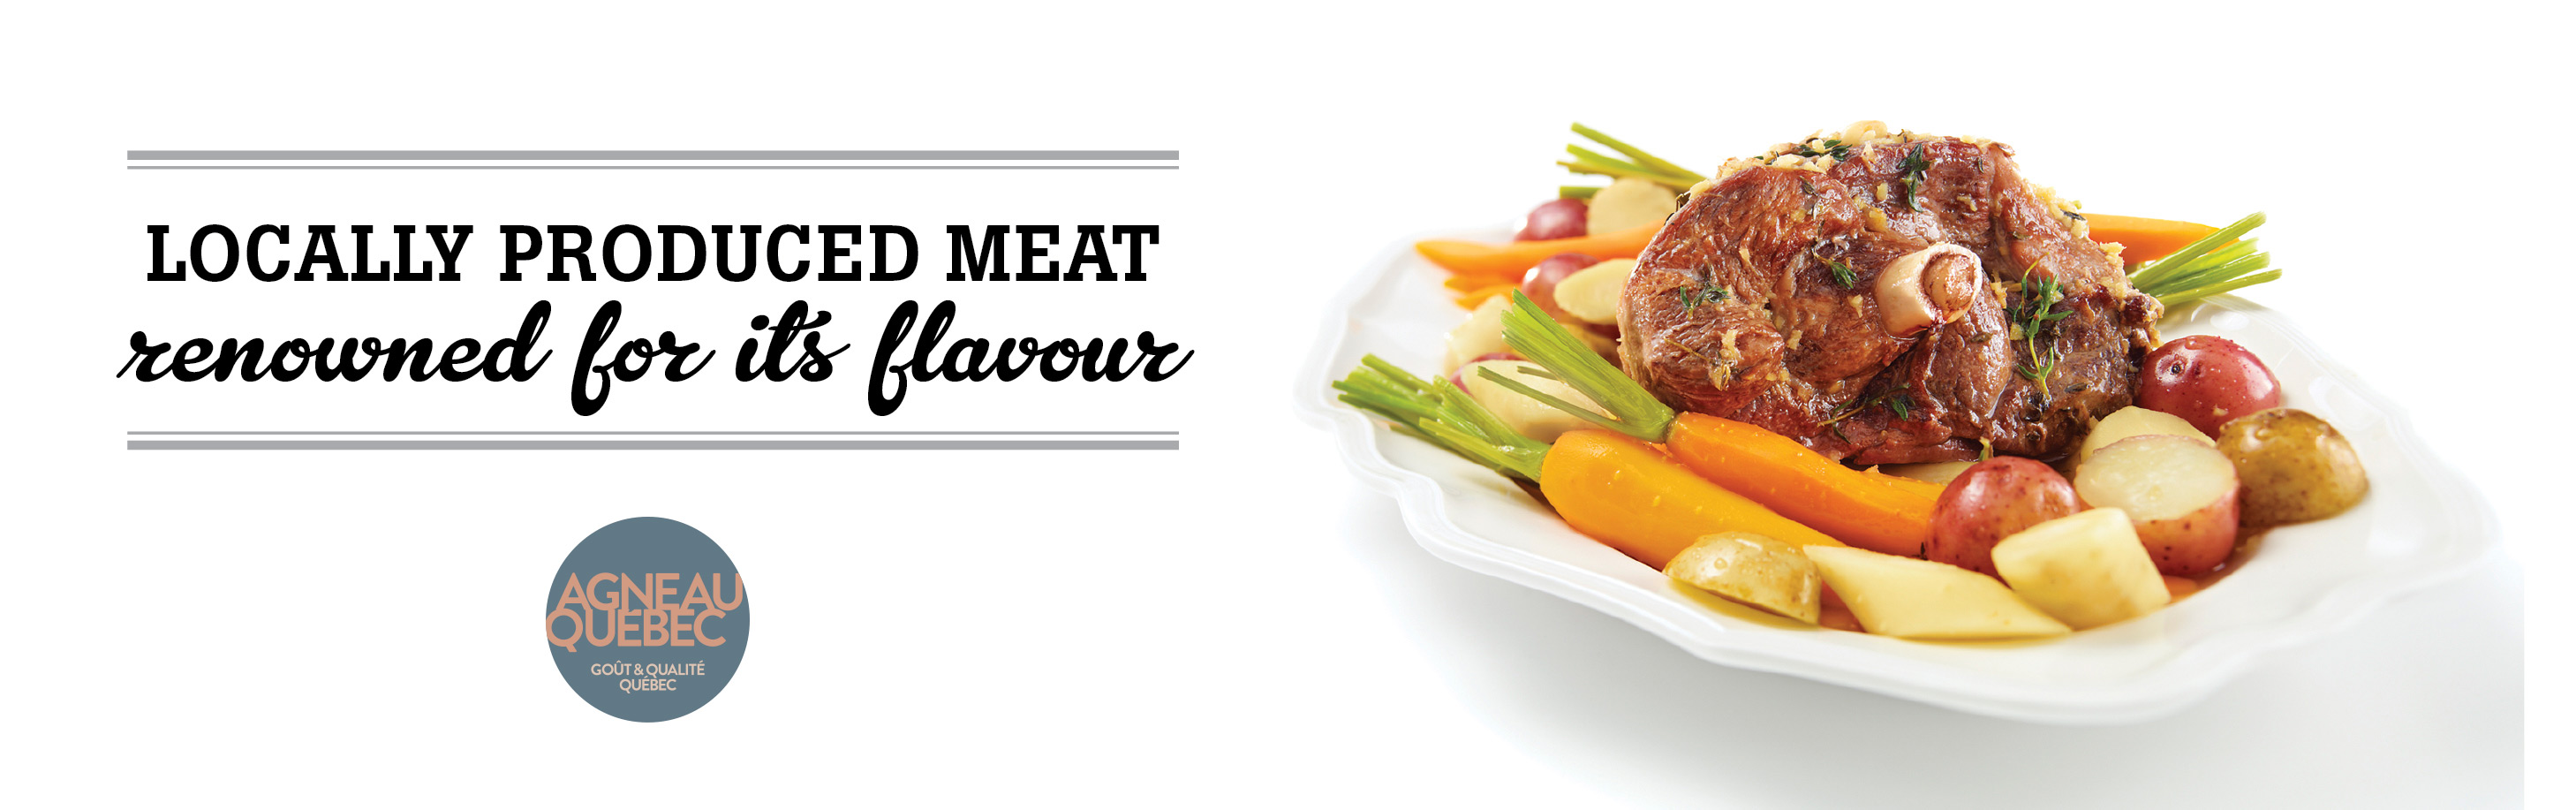 Locally produced meat, renowned for its flavour